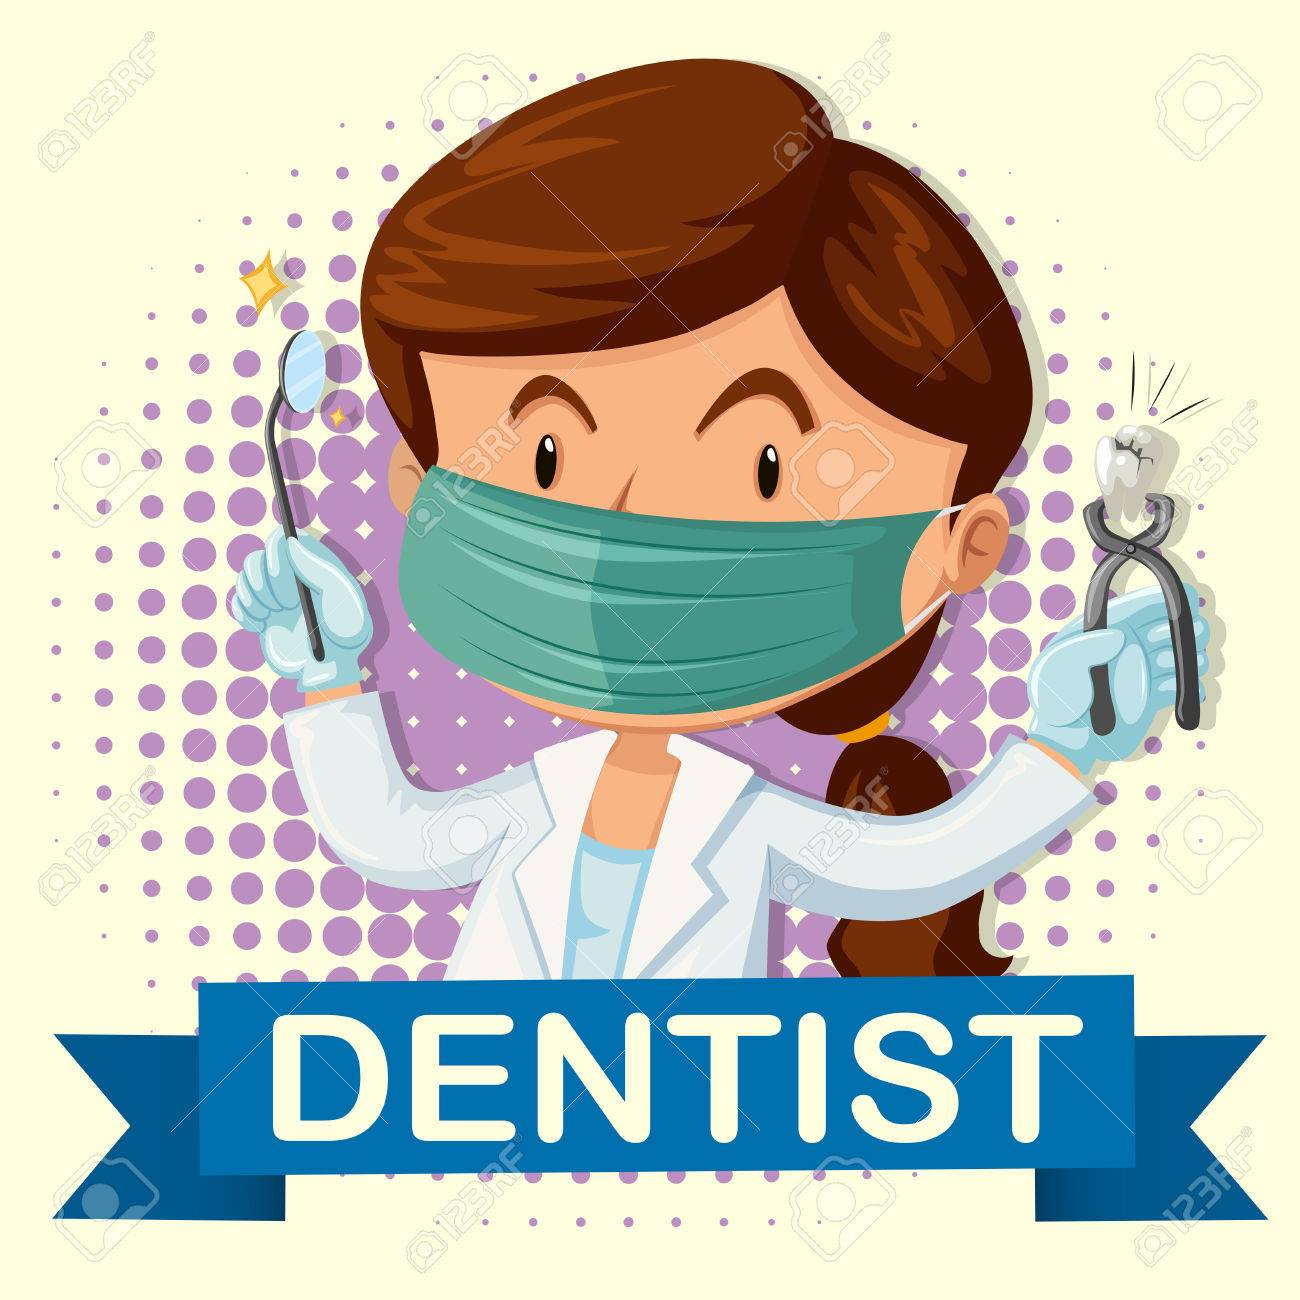 hight resolution of female dentist with tooth and tools illustration stock vector 48833703